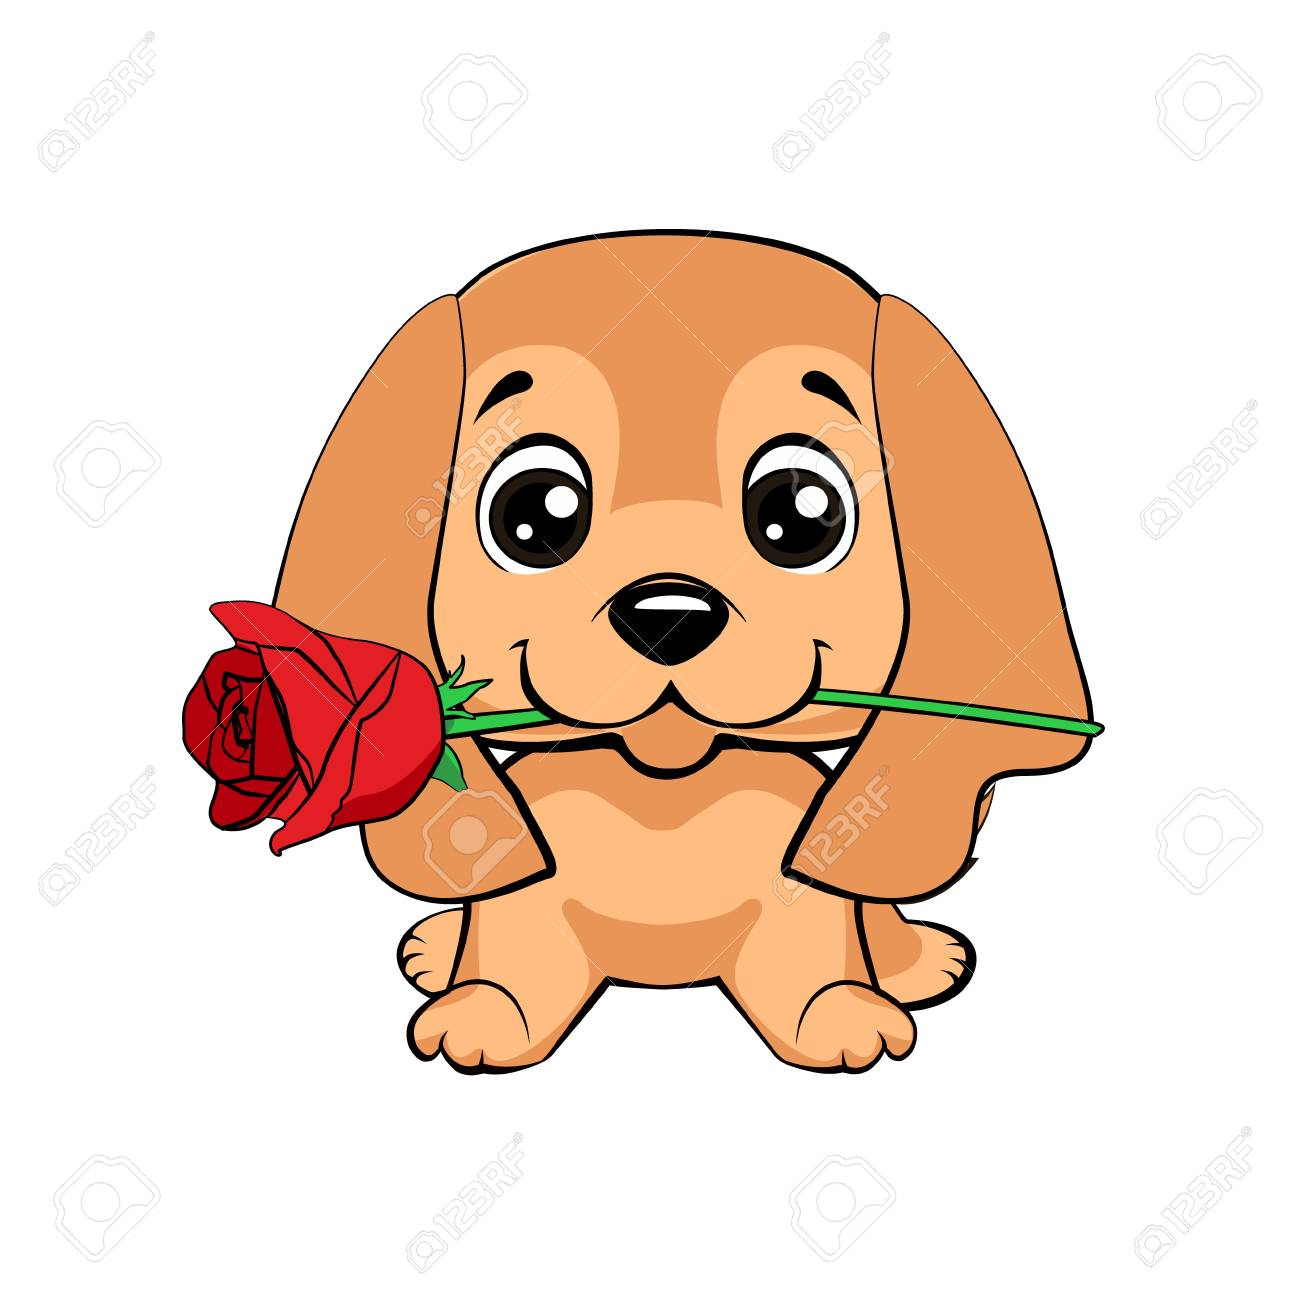 English Cocker Spaniel Dog Cute Puppy With A Flower Cartoon Royalty Free Cliparts Vectors And Stock Illustration Image 108408129